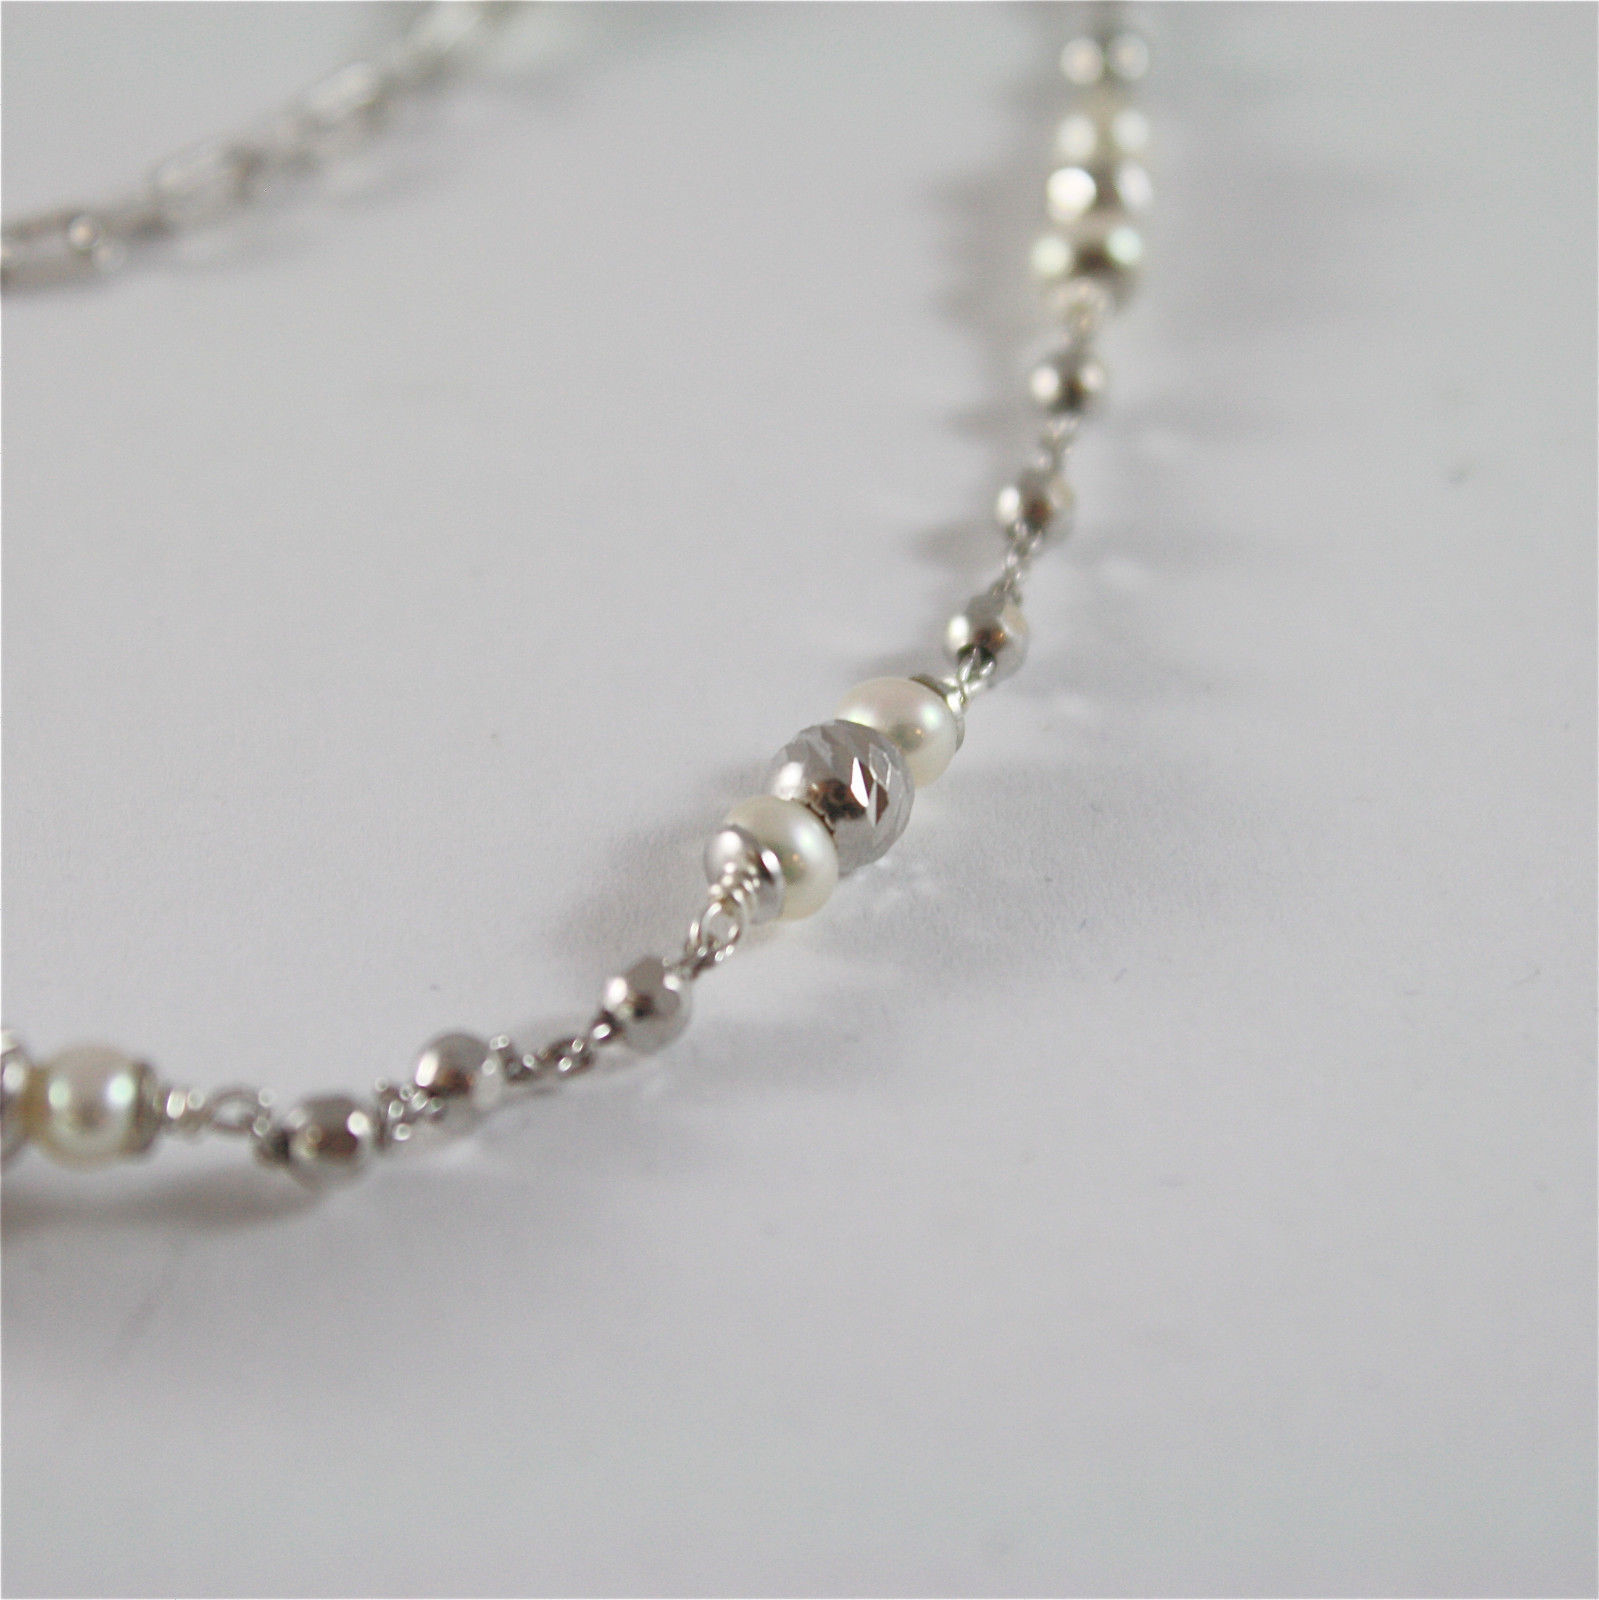 925 SILVER NECKLACE WITH 8 MM ROUND FW PEARL AND FACETED BALLS ITALIAN JEWELLERY